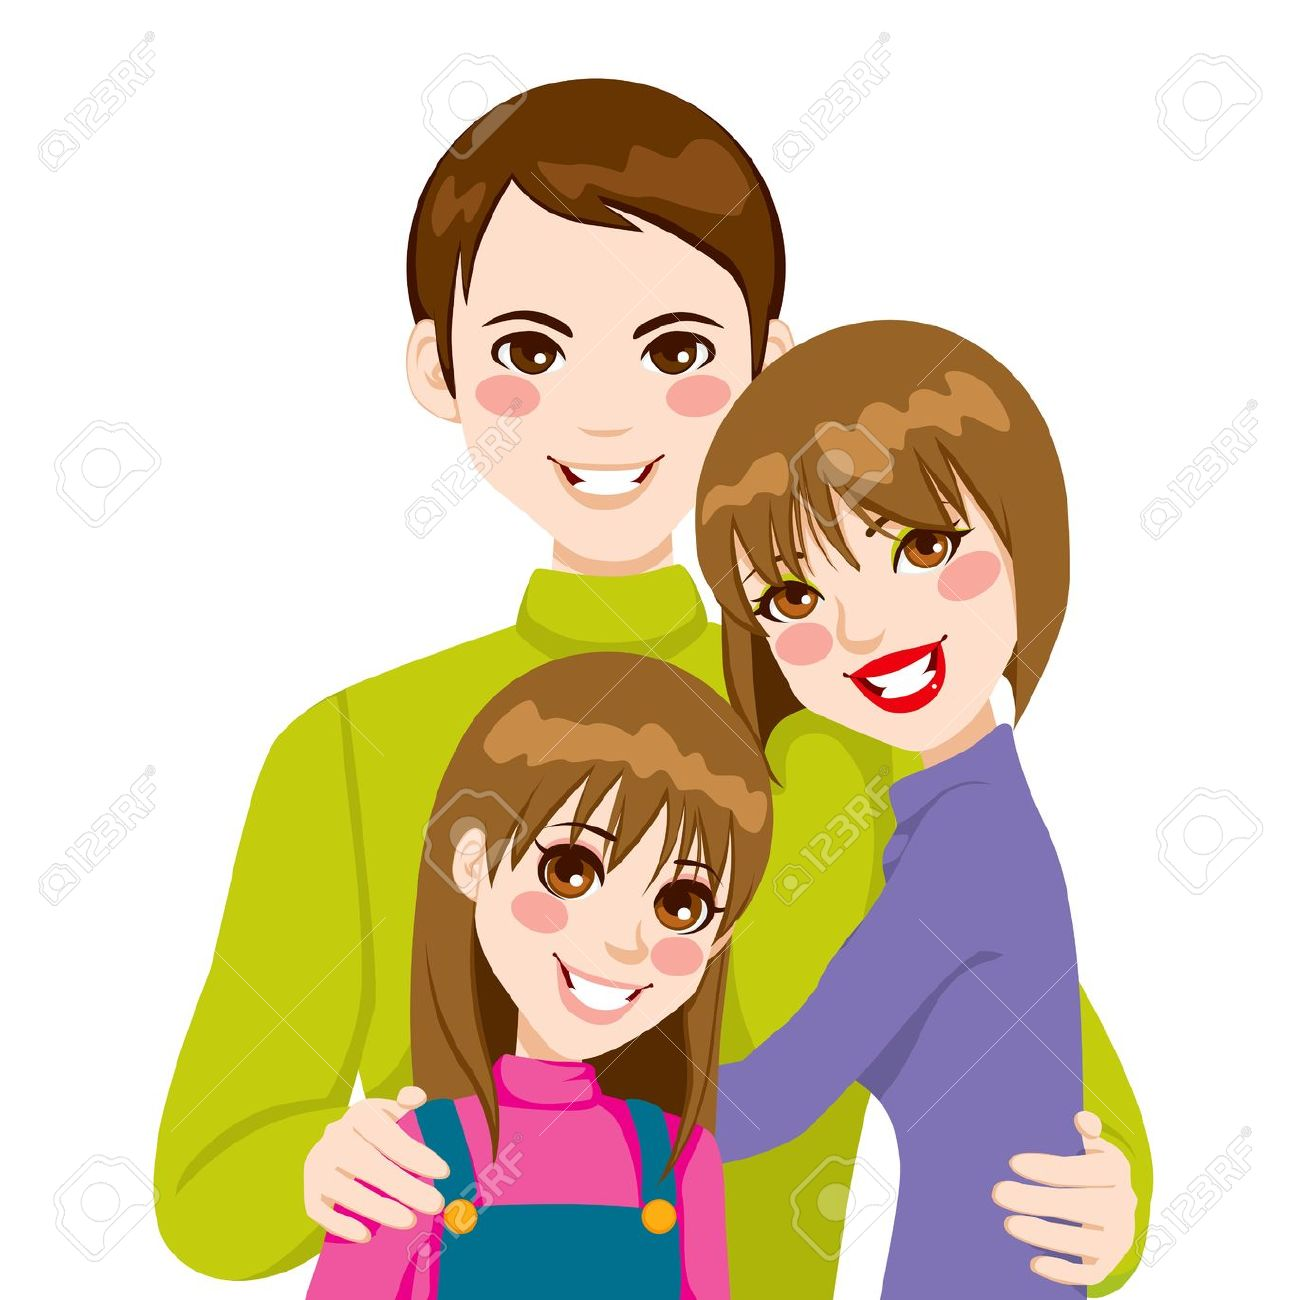 Clipart mama papa image freeuse download Momma and Papa Clip Art – Clipart Free Download image freeuse download